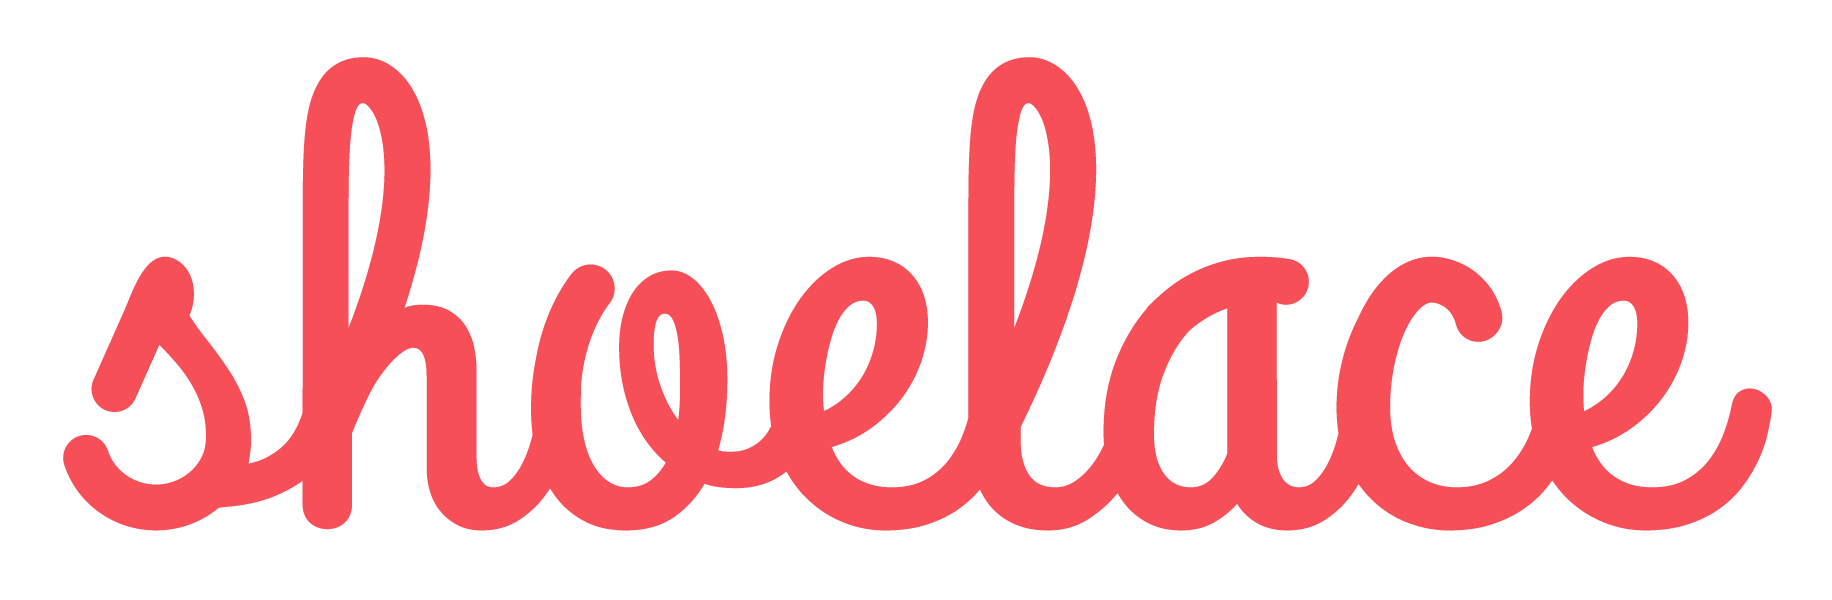 The word Shoelace logo icon in red cursive lettering